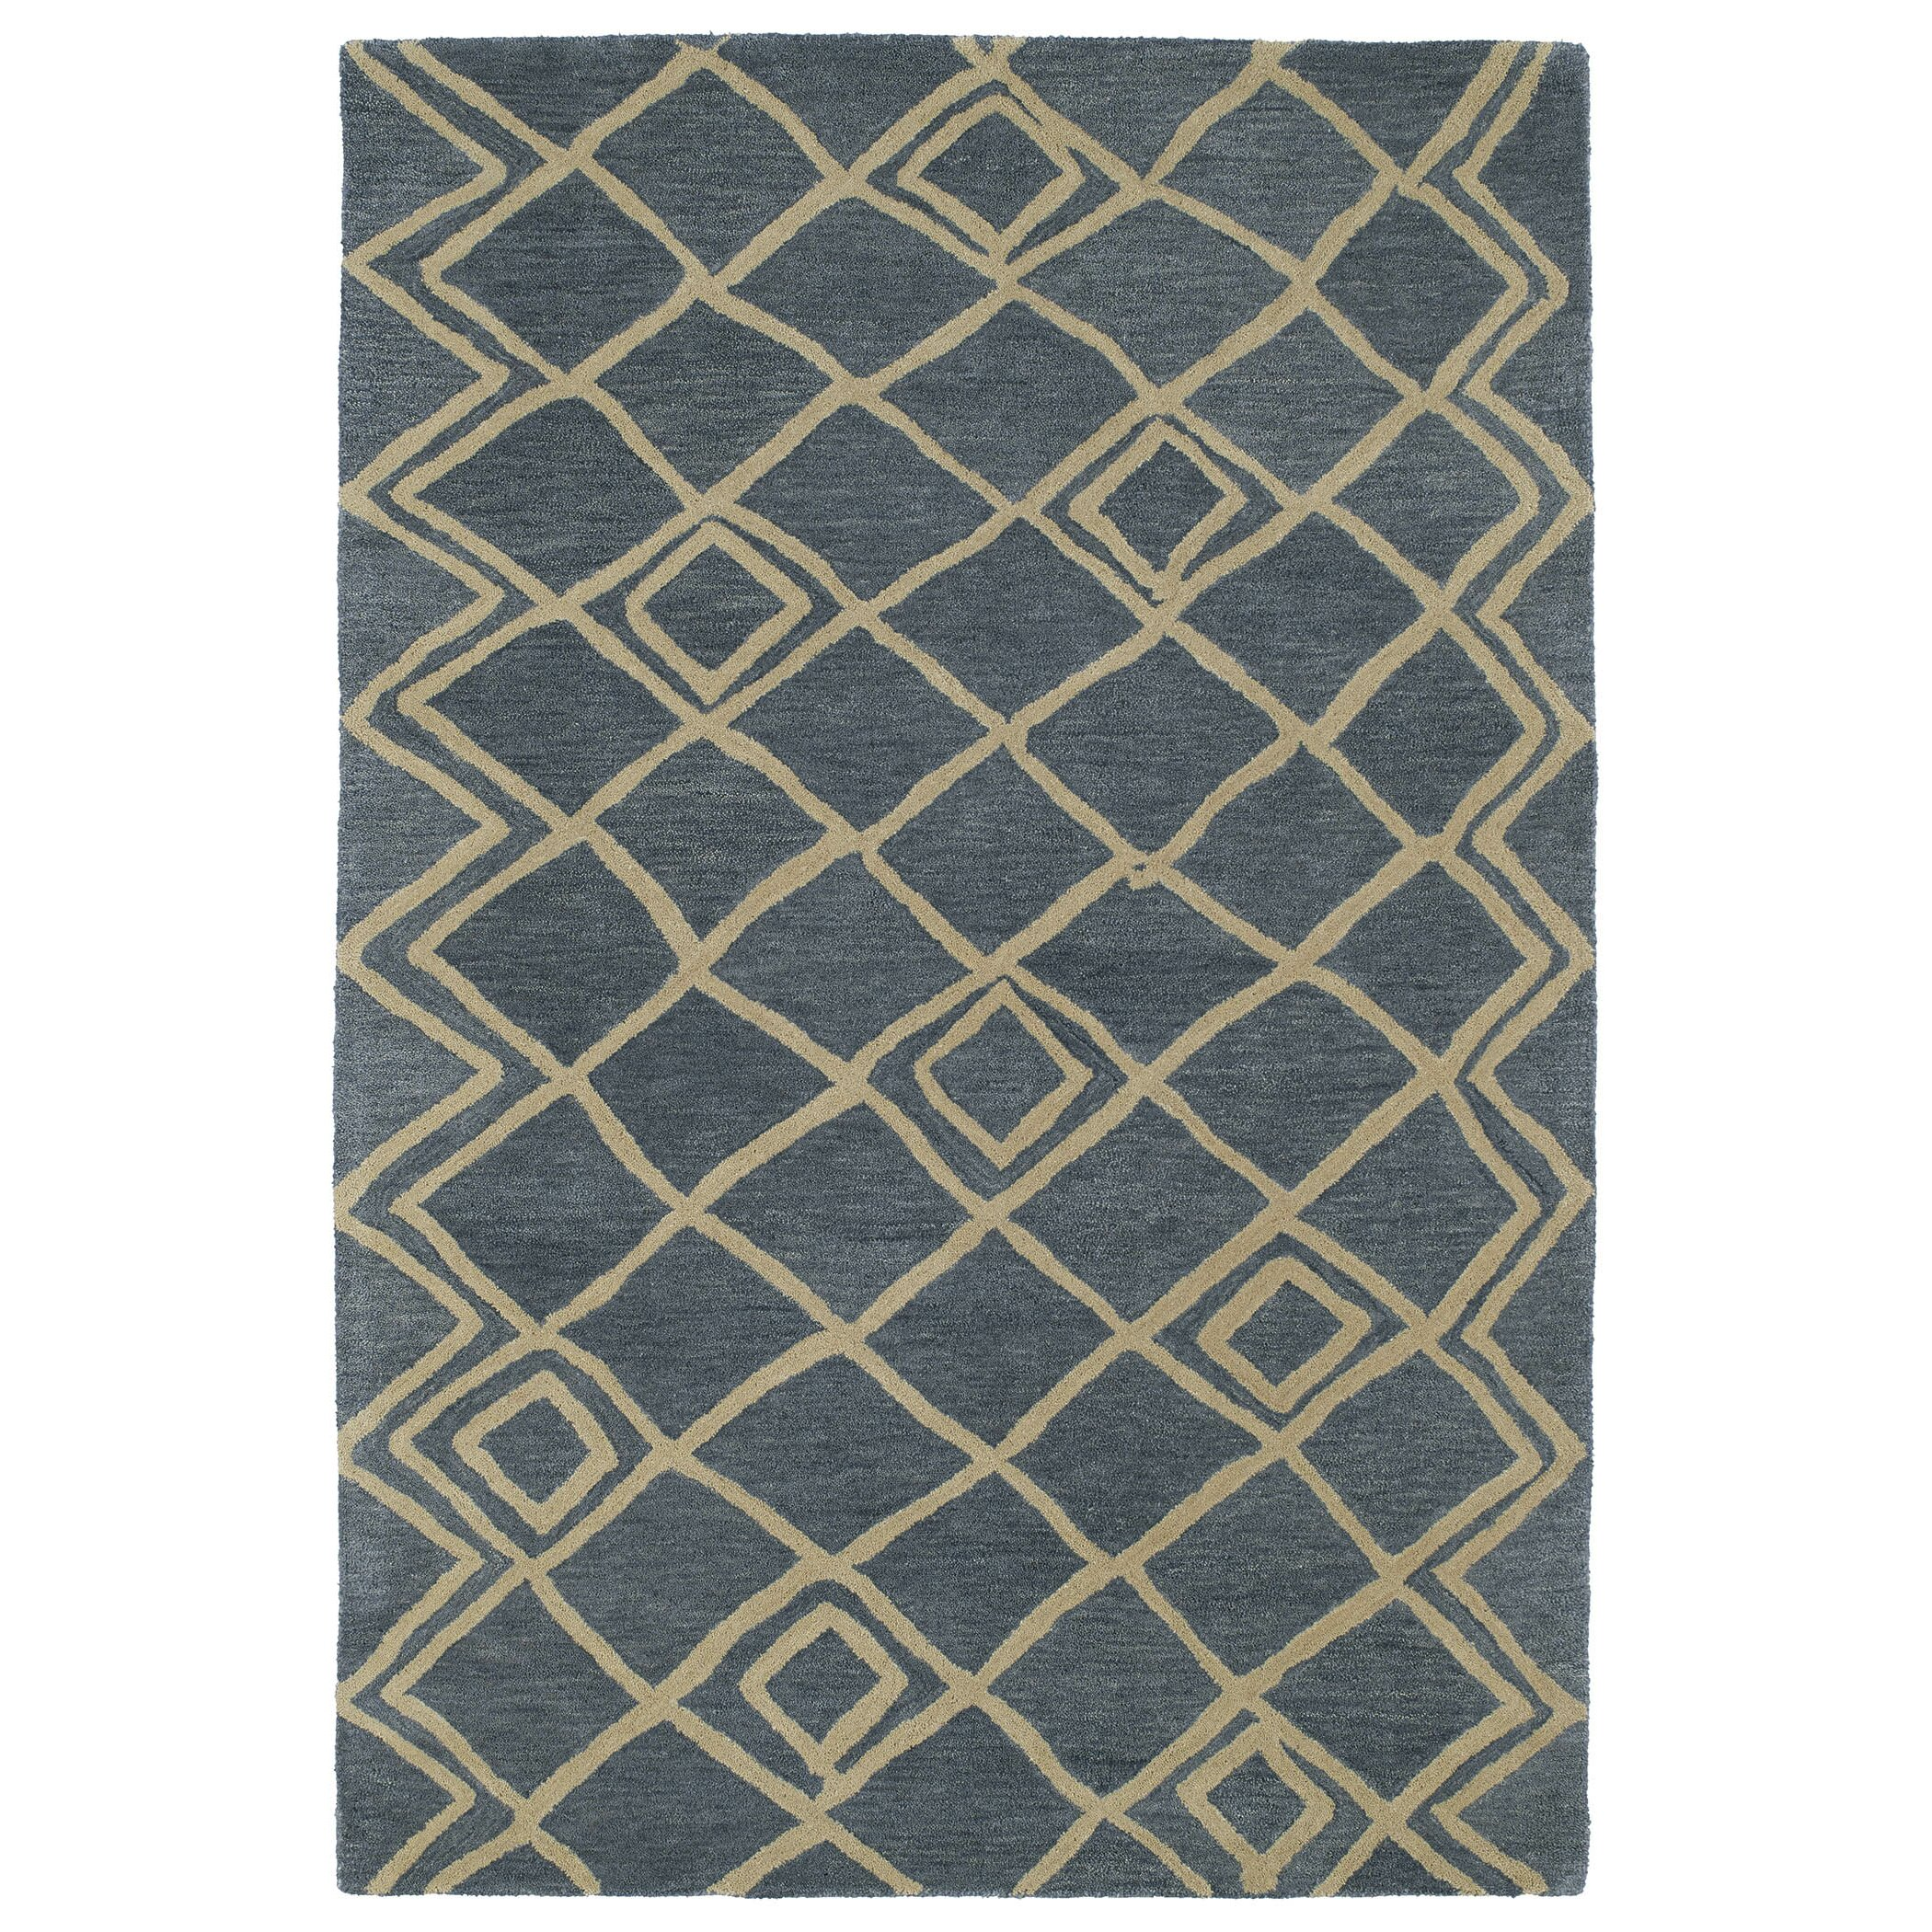 Kaleen Brooklyn Brody Rug: Kaleen Casablanca Blue Geometric Rug & Reviews